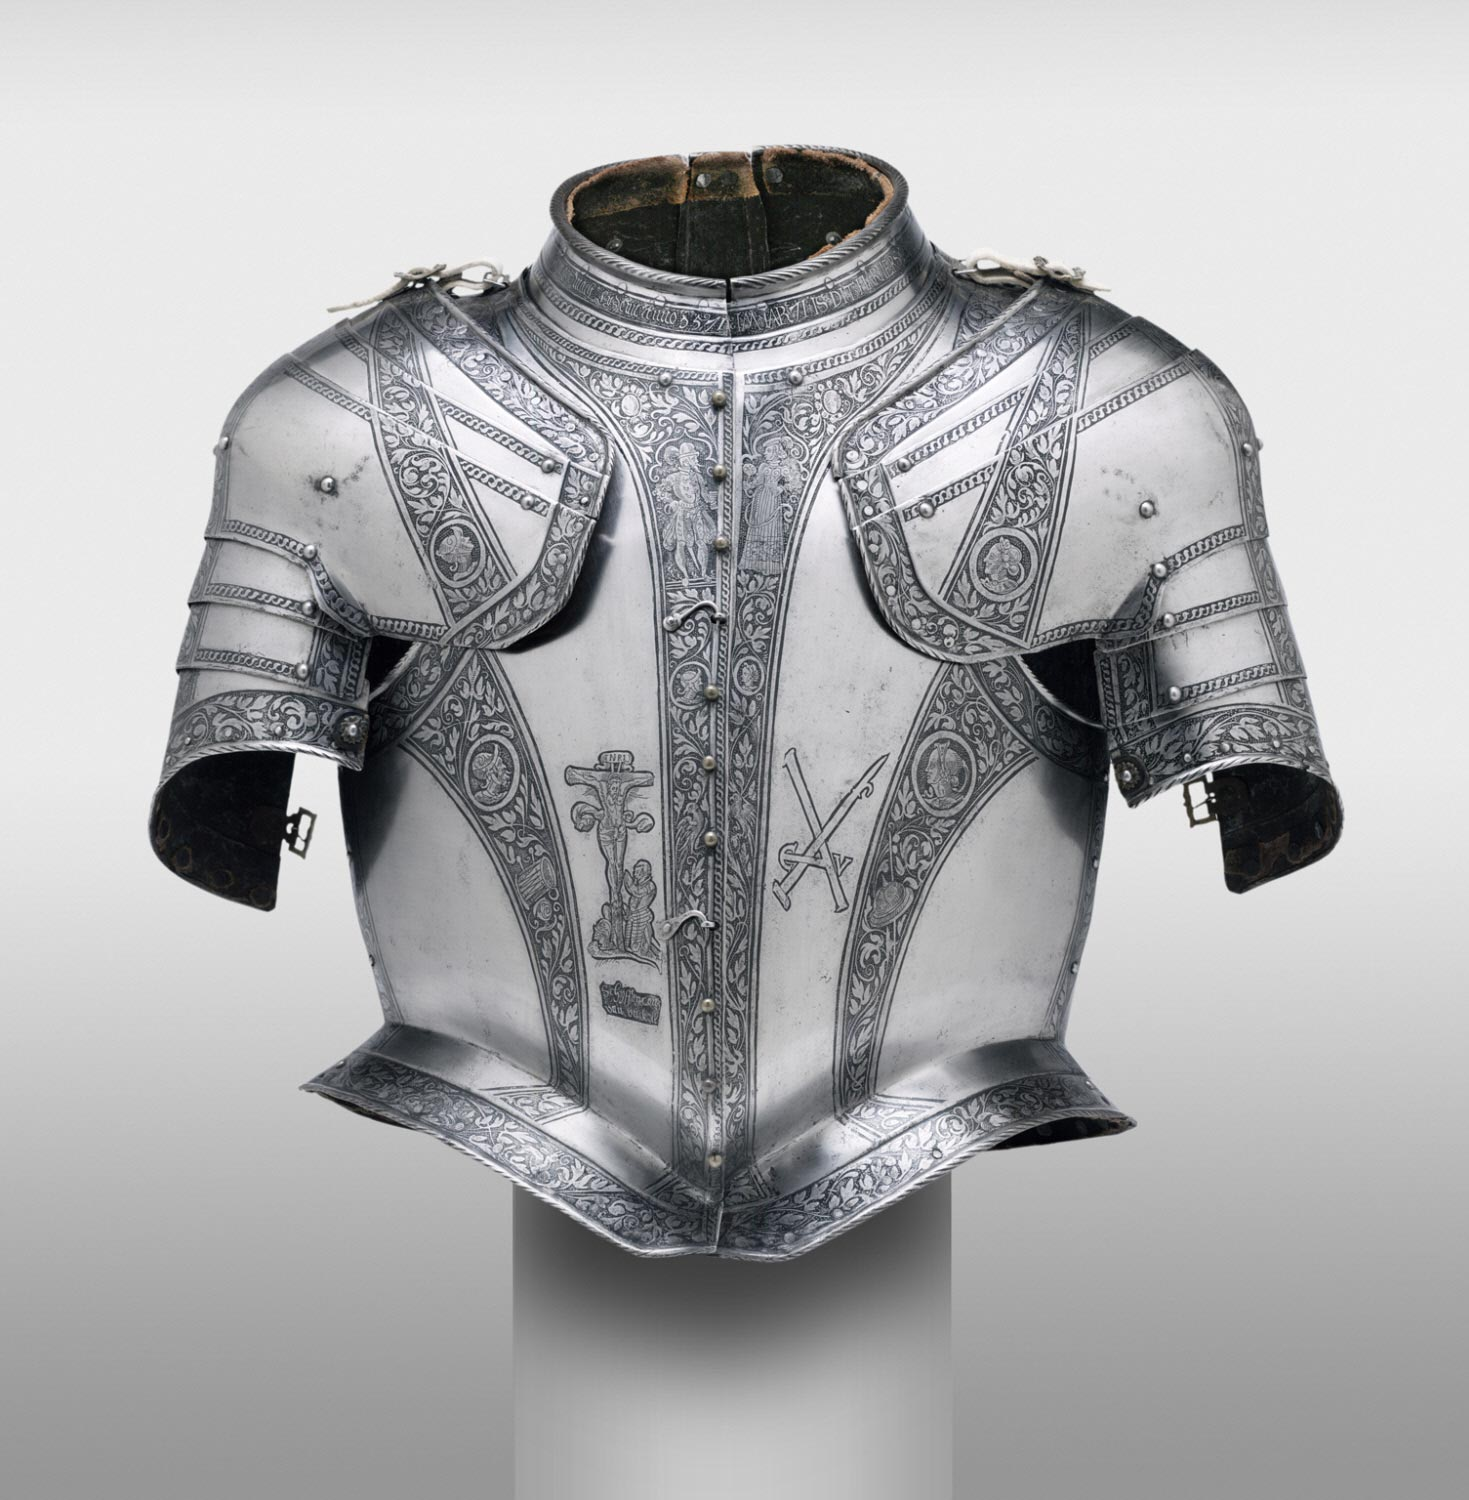 Waistcoat Corselet (torso defense) with Pauldrons (shoulder defenses), for use in combat on ship